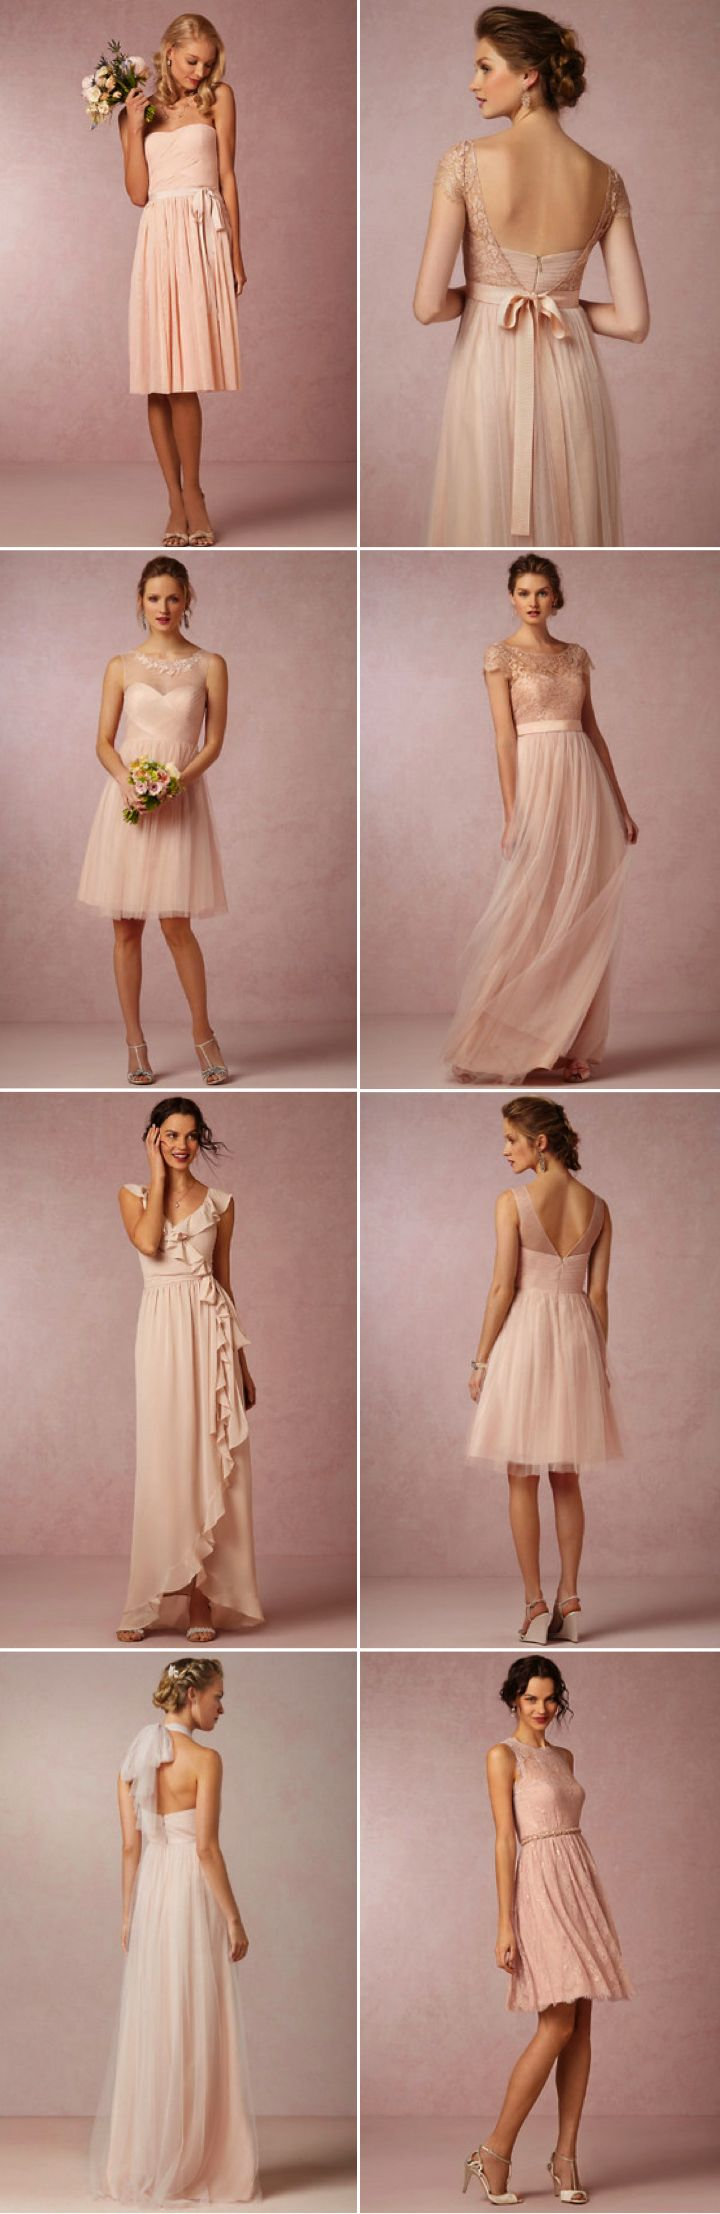 Blush bridesmaid dresses | BHLDN http://www.theperfectpaletteshop.com/